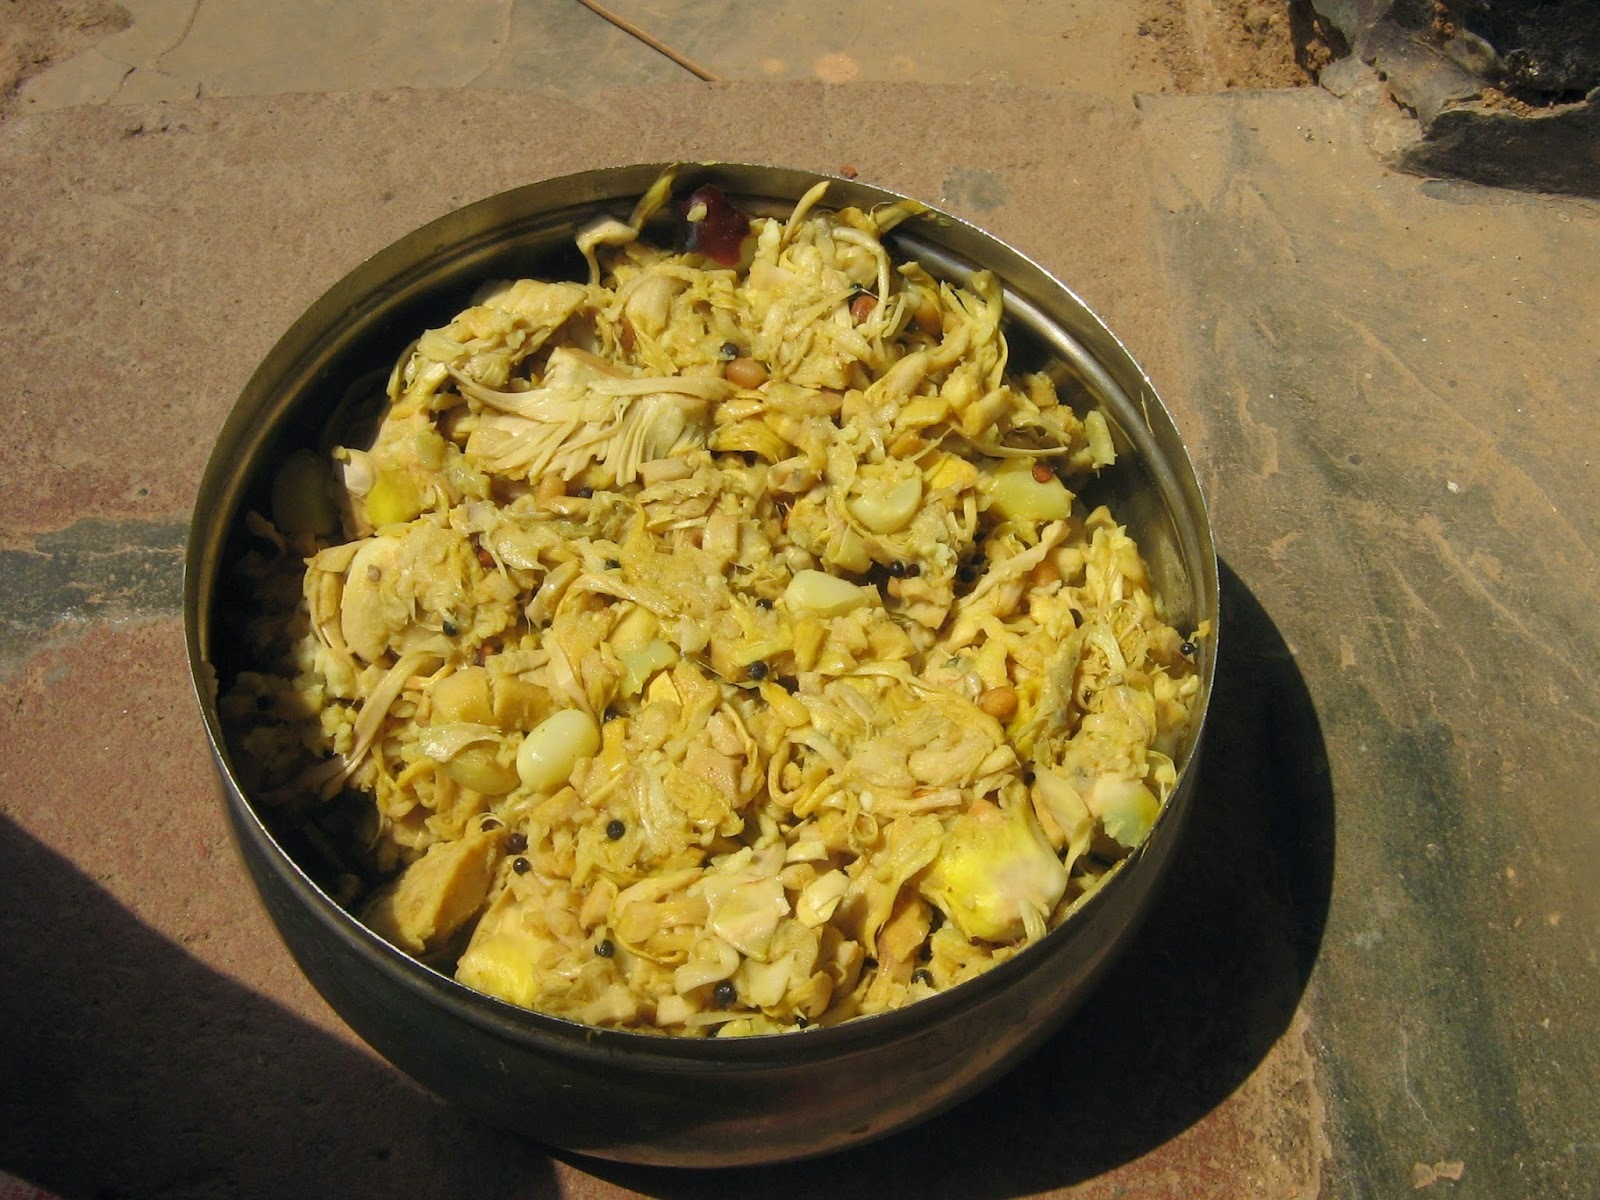 idichakka thoran / tender jackfruit thoran